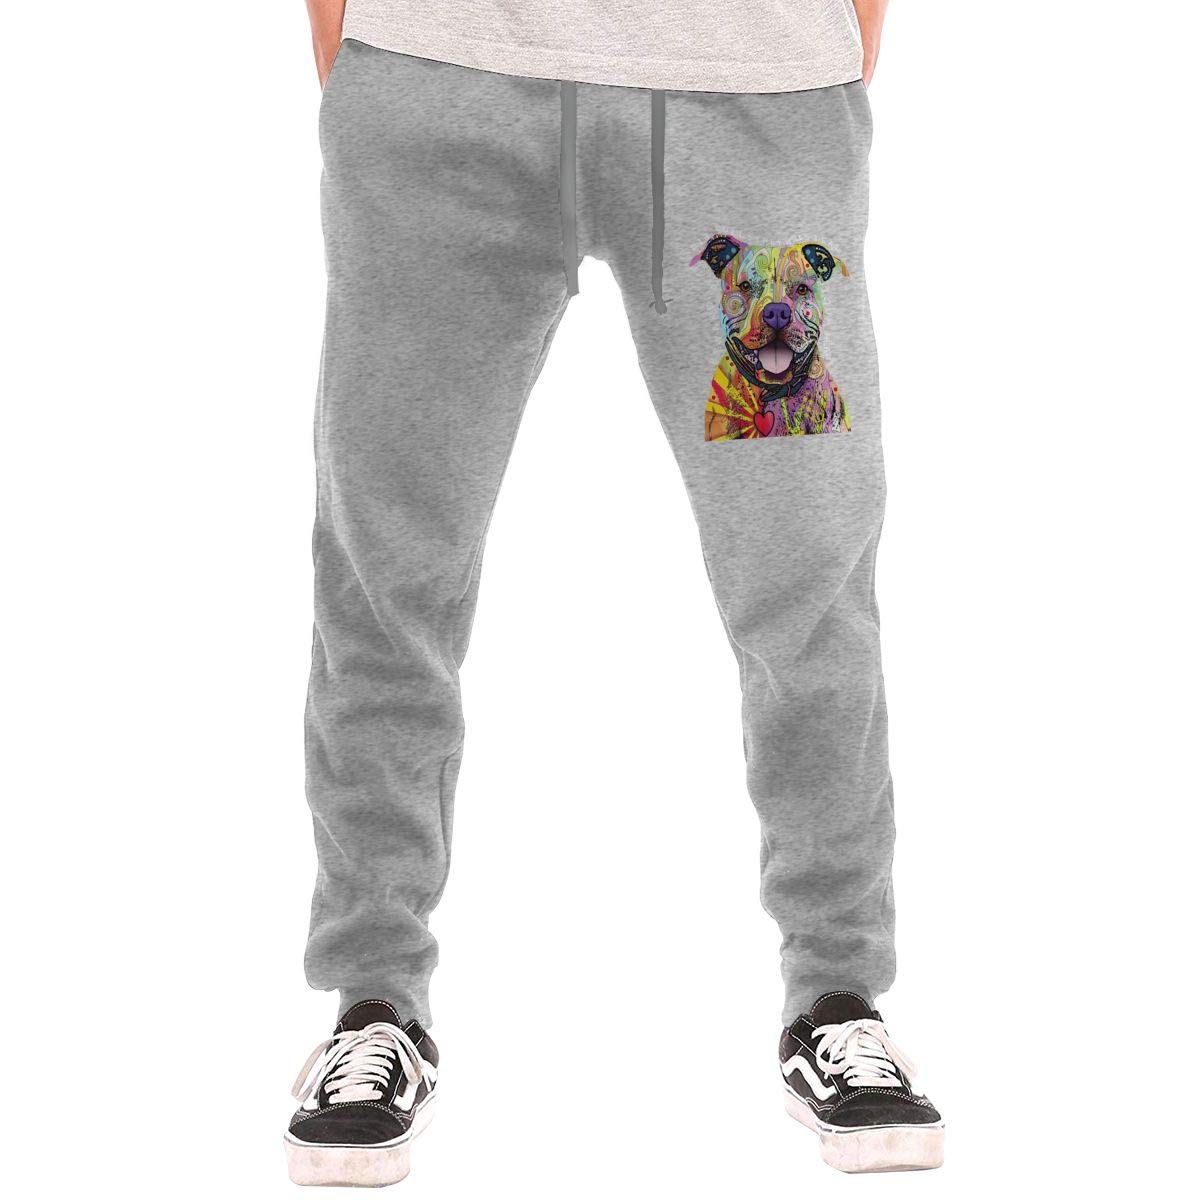 ZlTRNNE Sloth Pineapple Casual Joggers Lounge Pajama Gym Workout Pants Casual Long Pants for Men